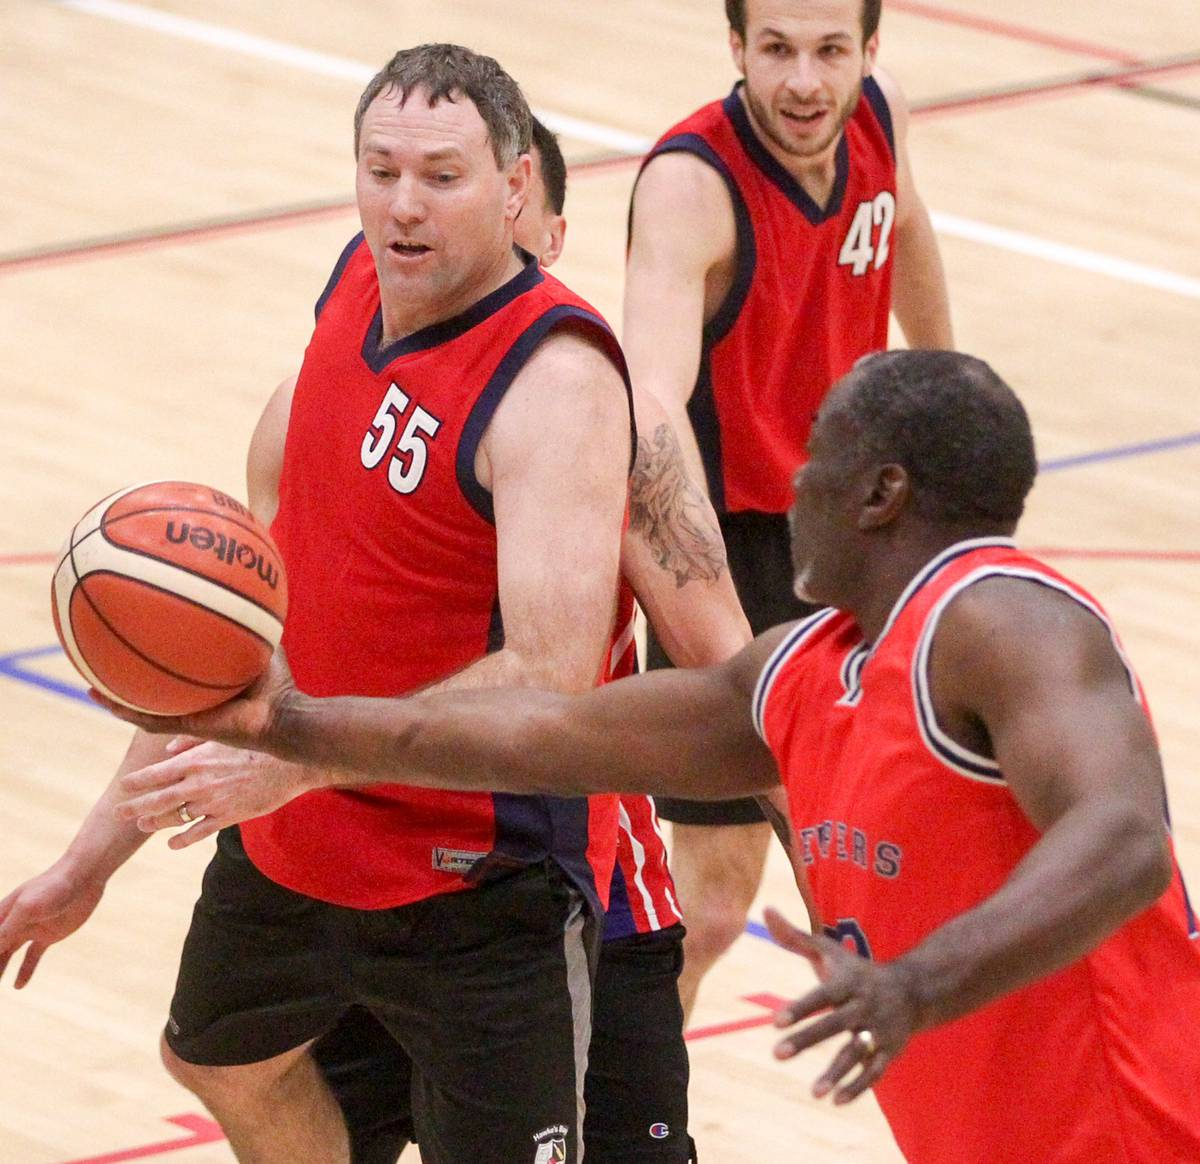 Basketball: Old guns still firing for young 'uns in Hawke's Bay league